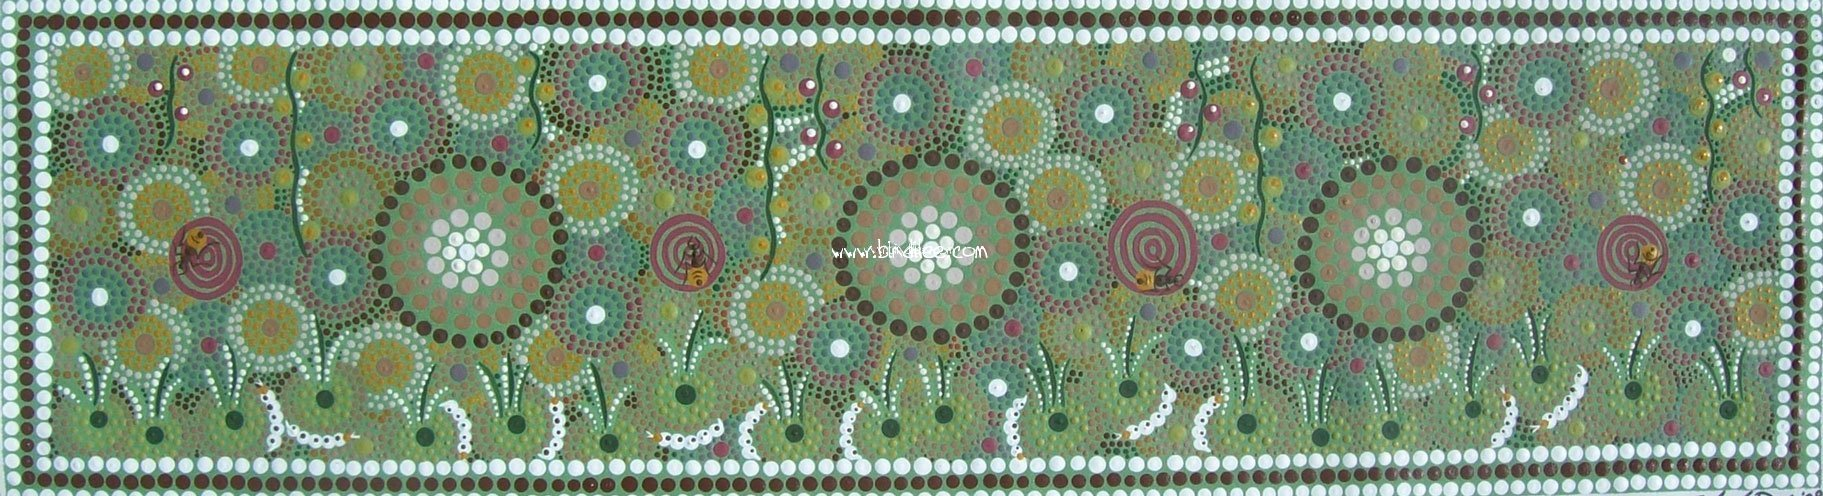 Country - 16 - Bindi Lee Australian Indigenous Artist